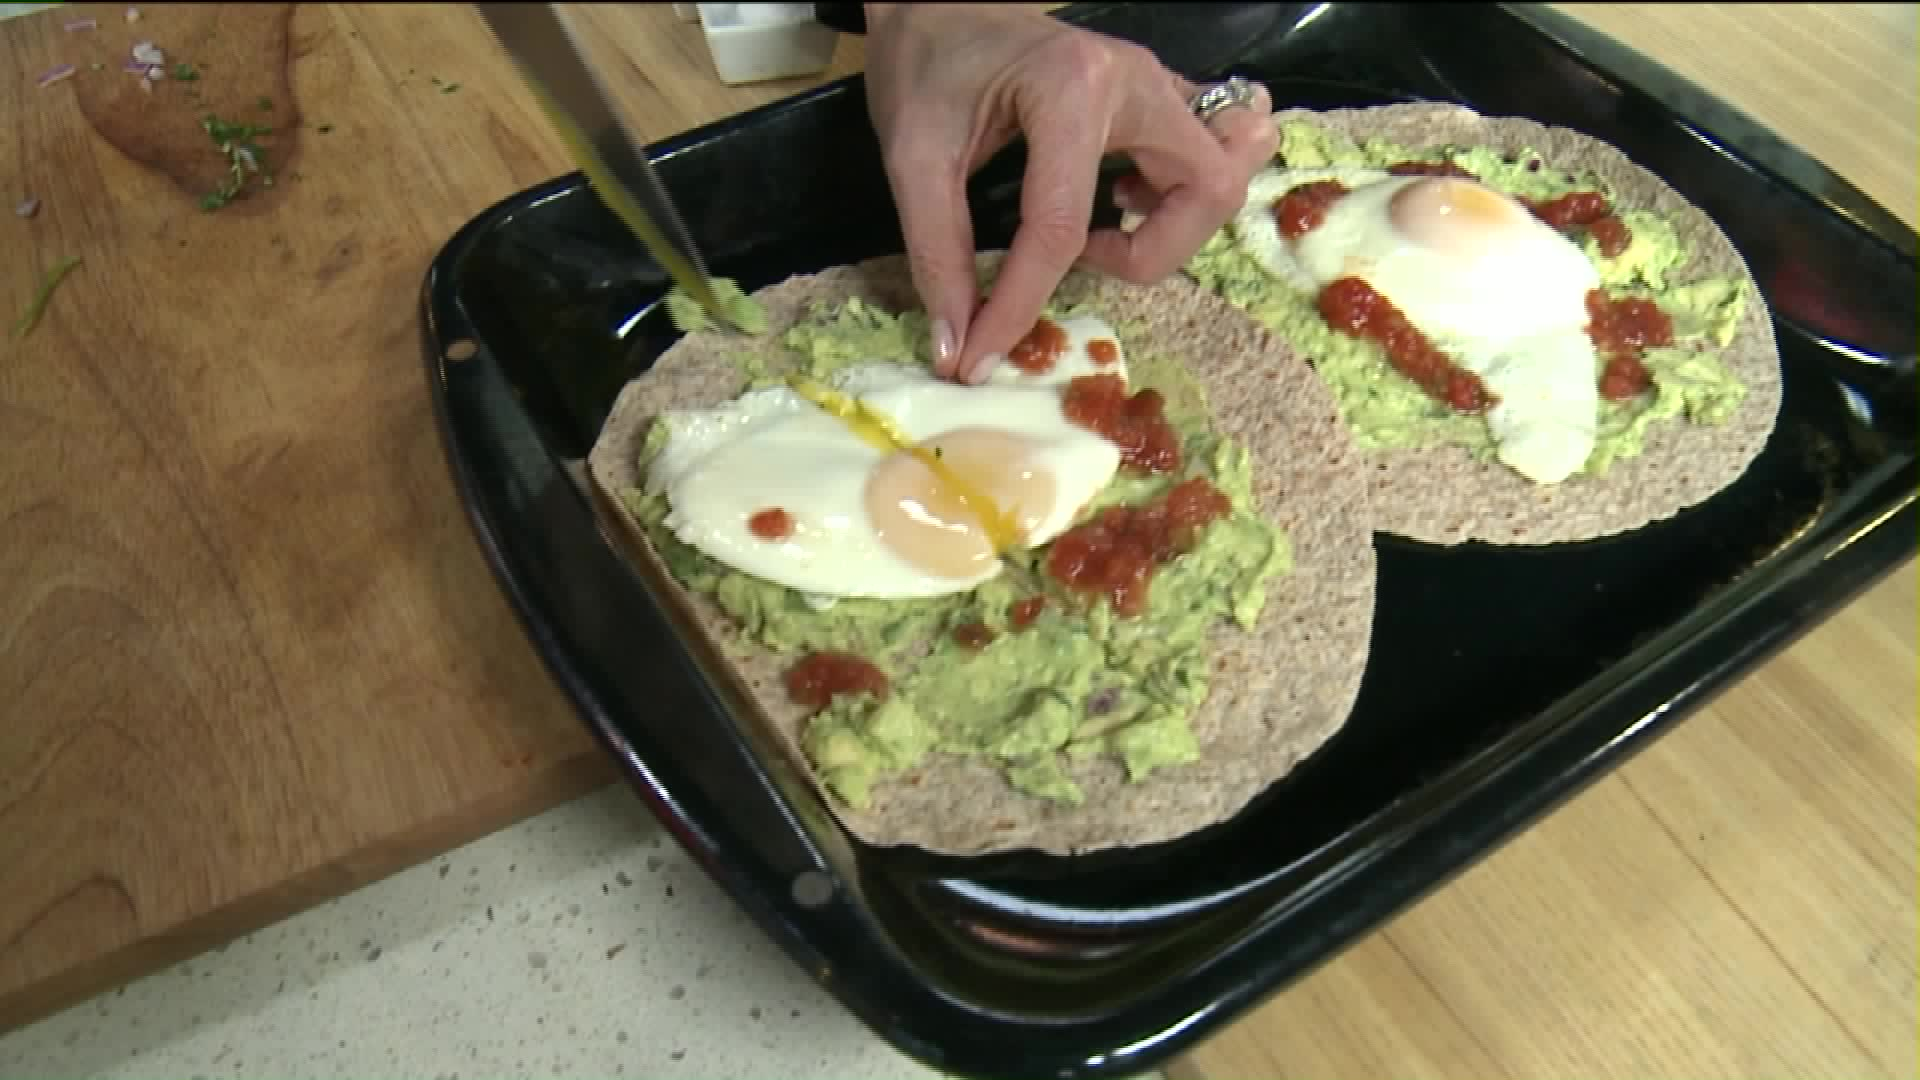 How To Make Avocado & Egg Breakfast Pizzas